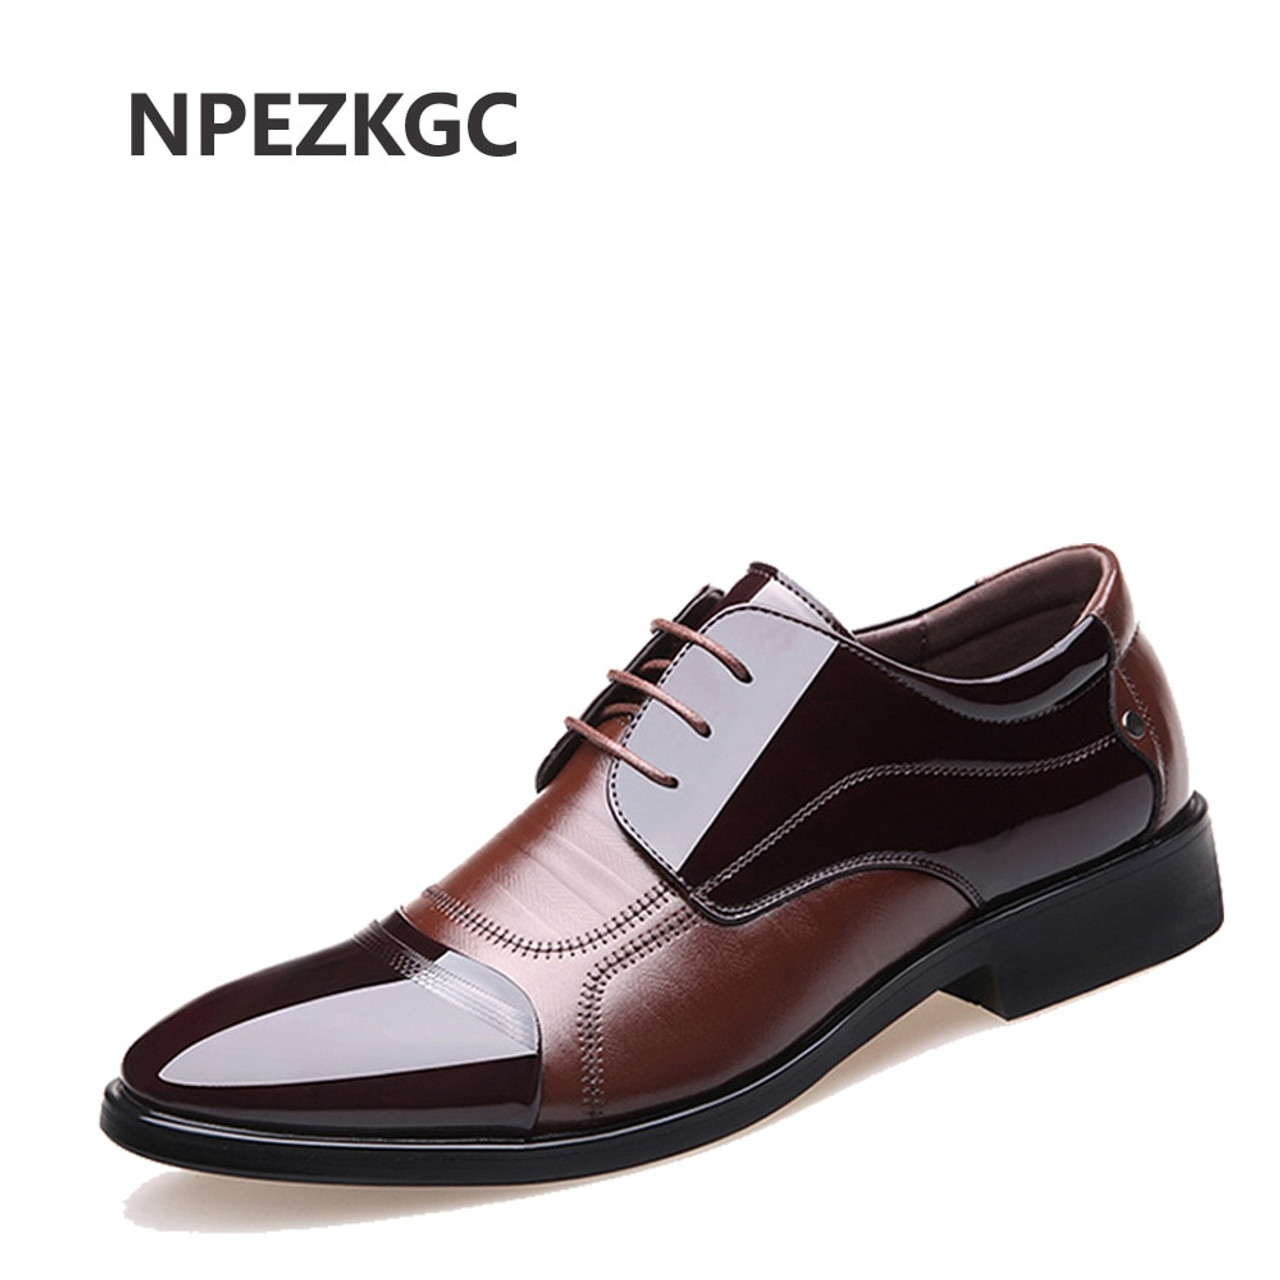 122c19e52eca NPEZKGC Fashion Genuine Leather Men Oxford Shoes